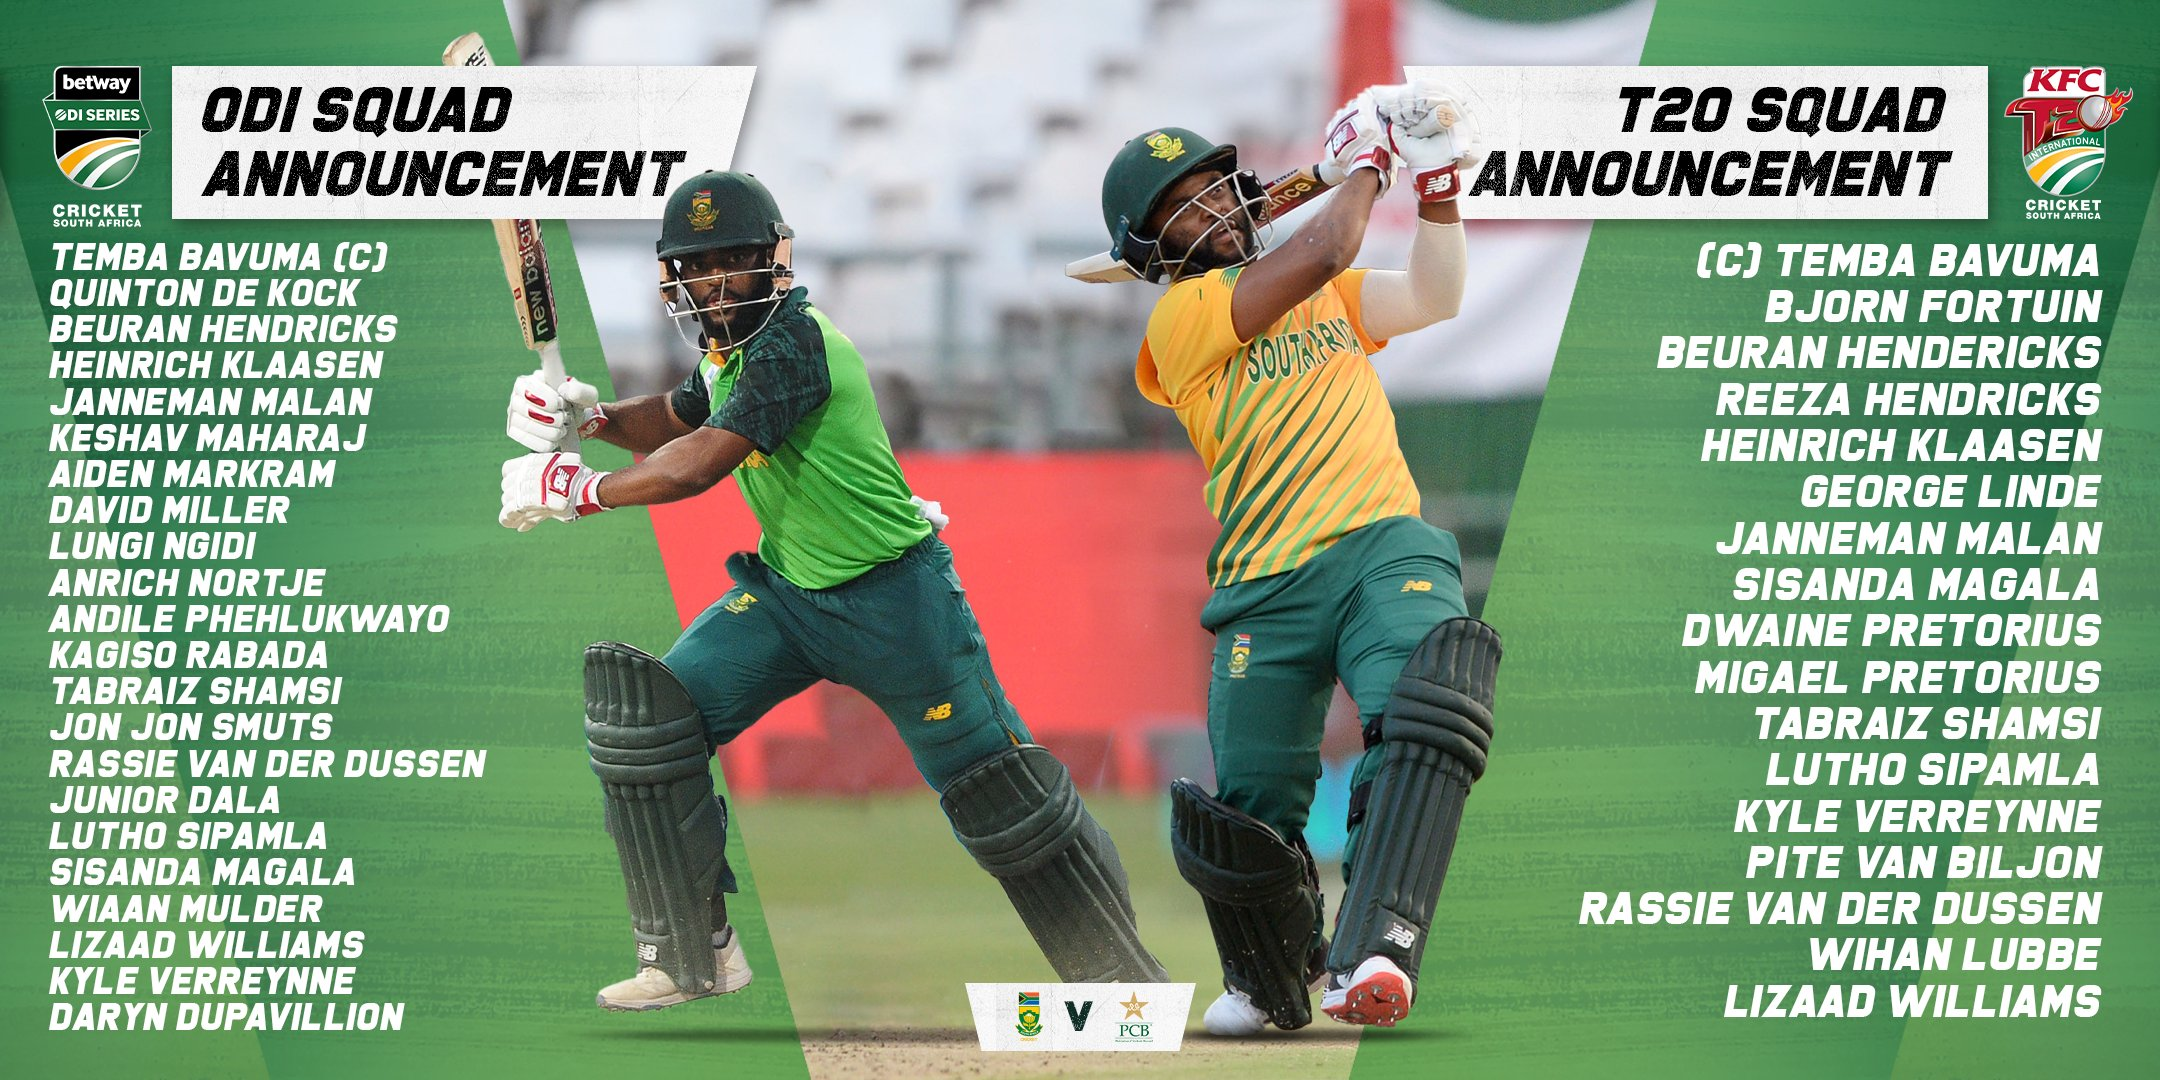 South Africa Vs Pakistan 2021: CSA Announce ODI And T20I Squads; No IPL-Bound Players To Feature In The T20I Series